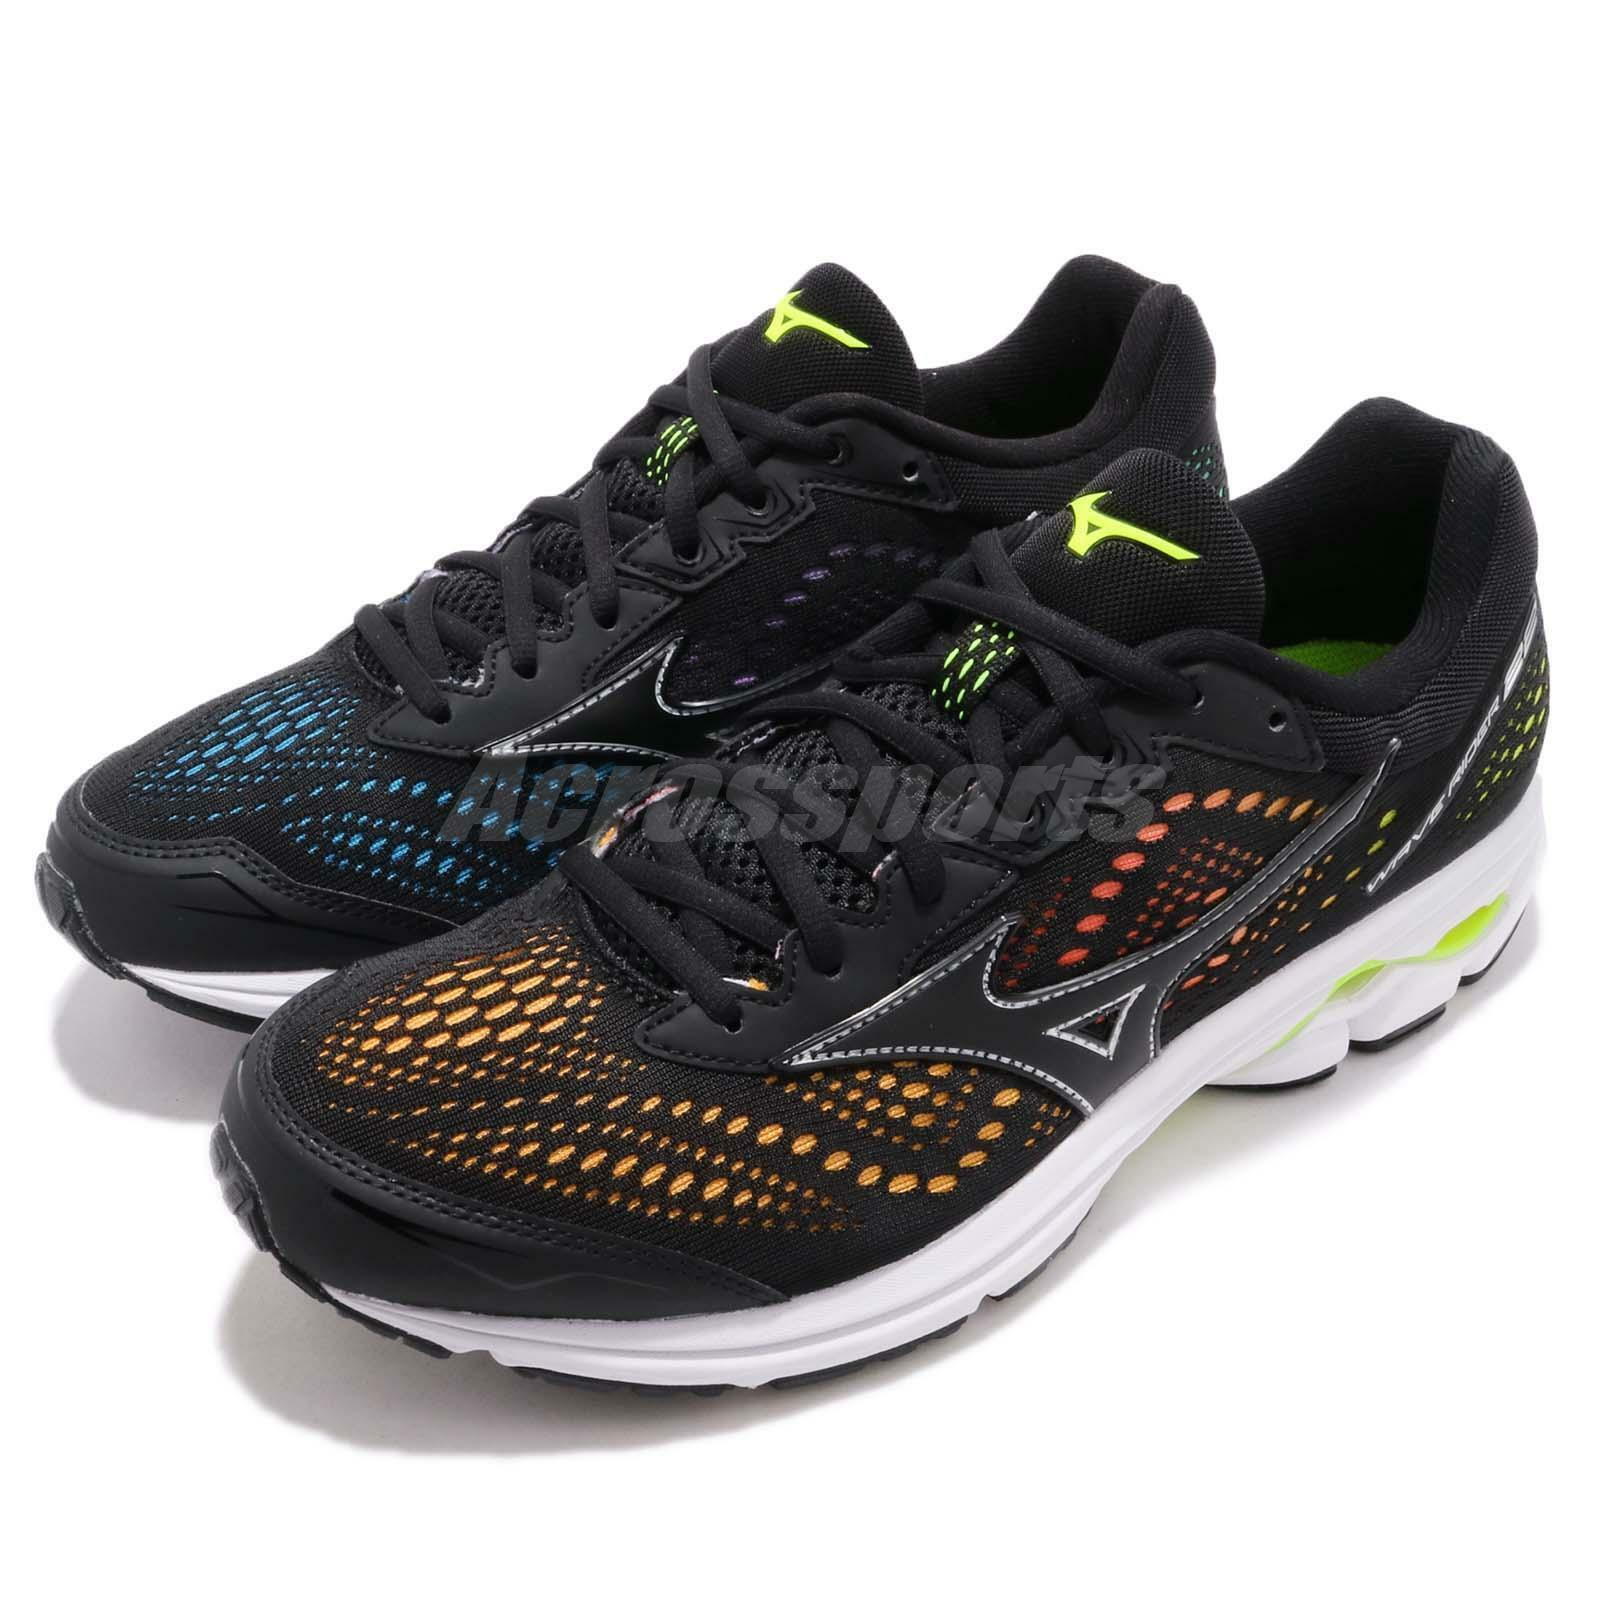 best loved acff4 c3e08 ... Mizuno Wave Rider 22 Mens Cloudwave Running Shoes Sneakers Trainers  Trainers Trainers Pick 1 467a15